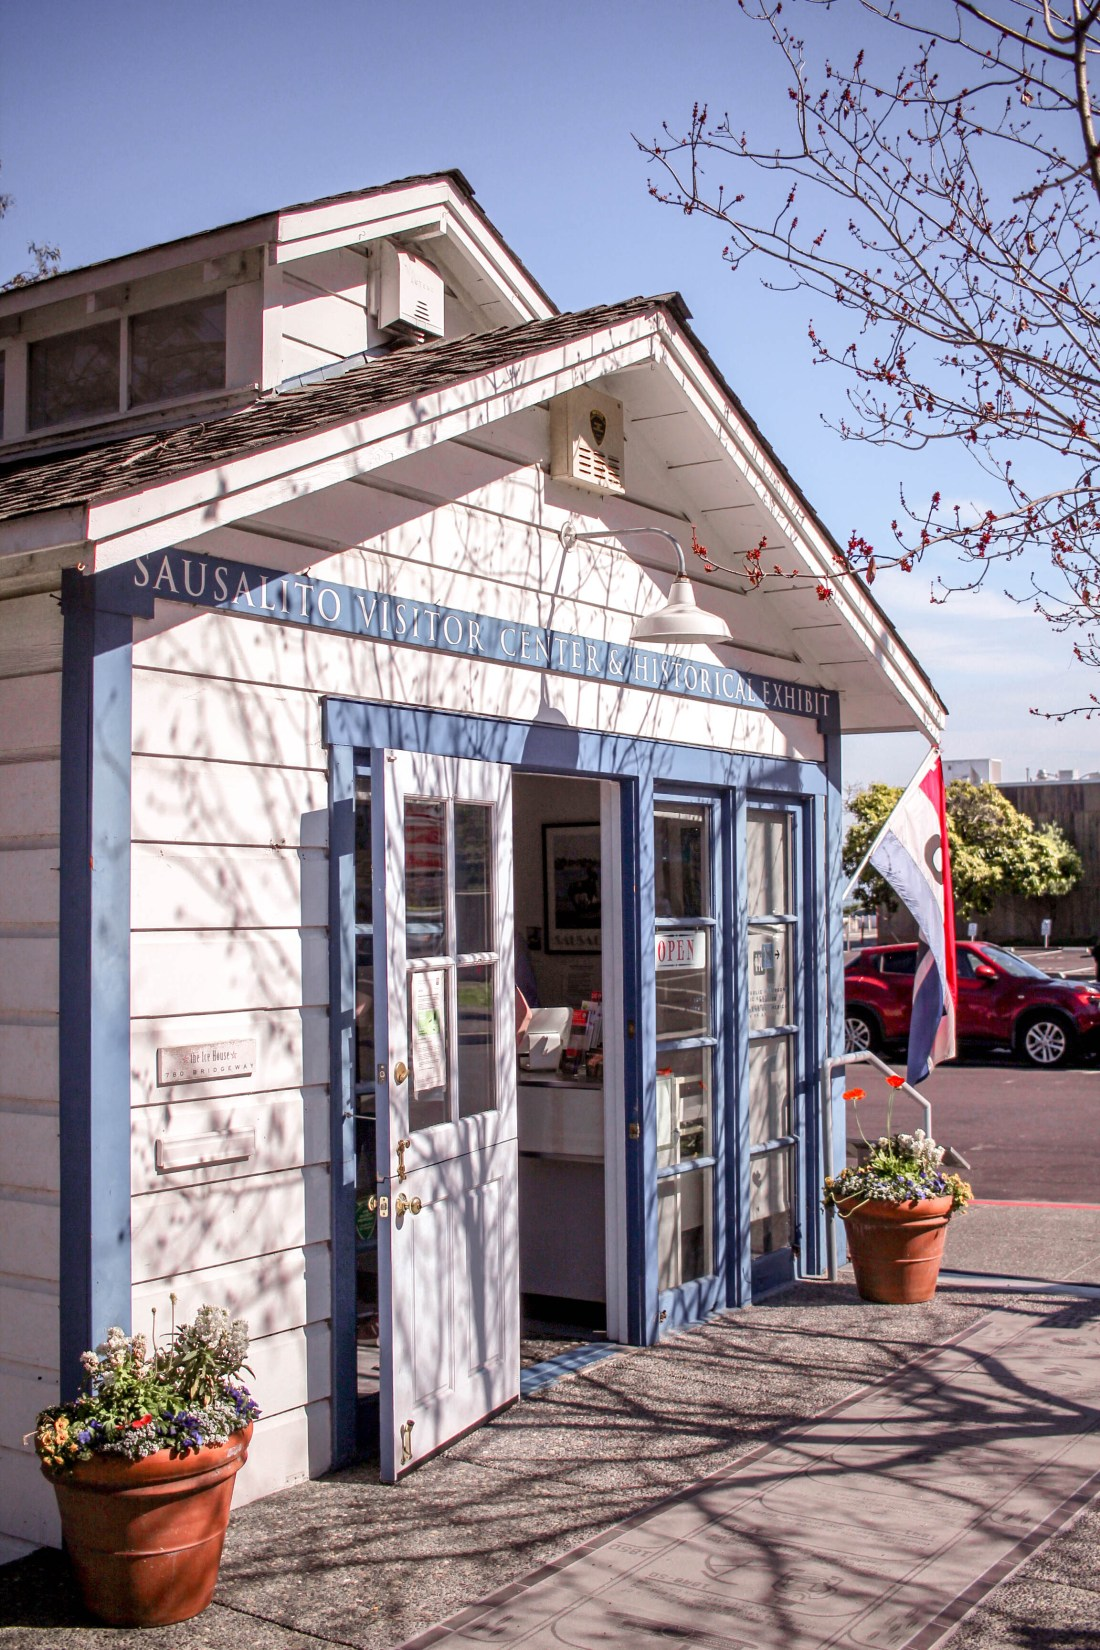 Sausalito visitor center